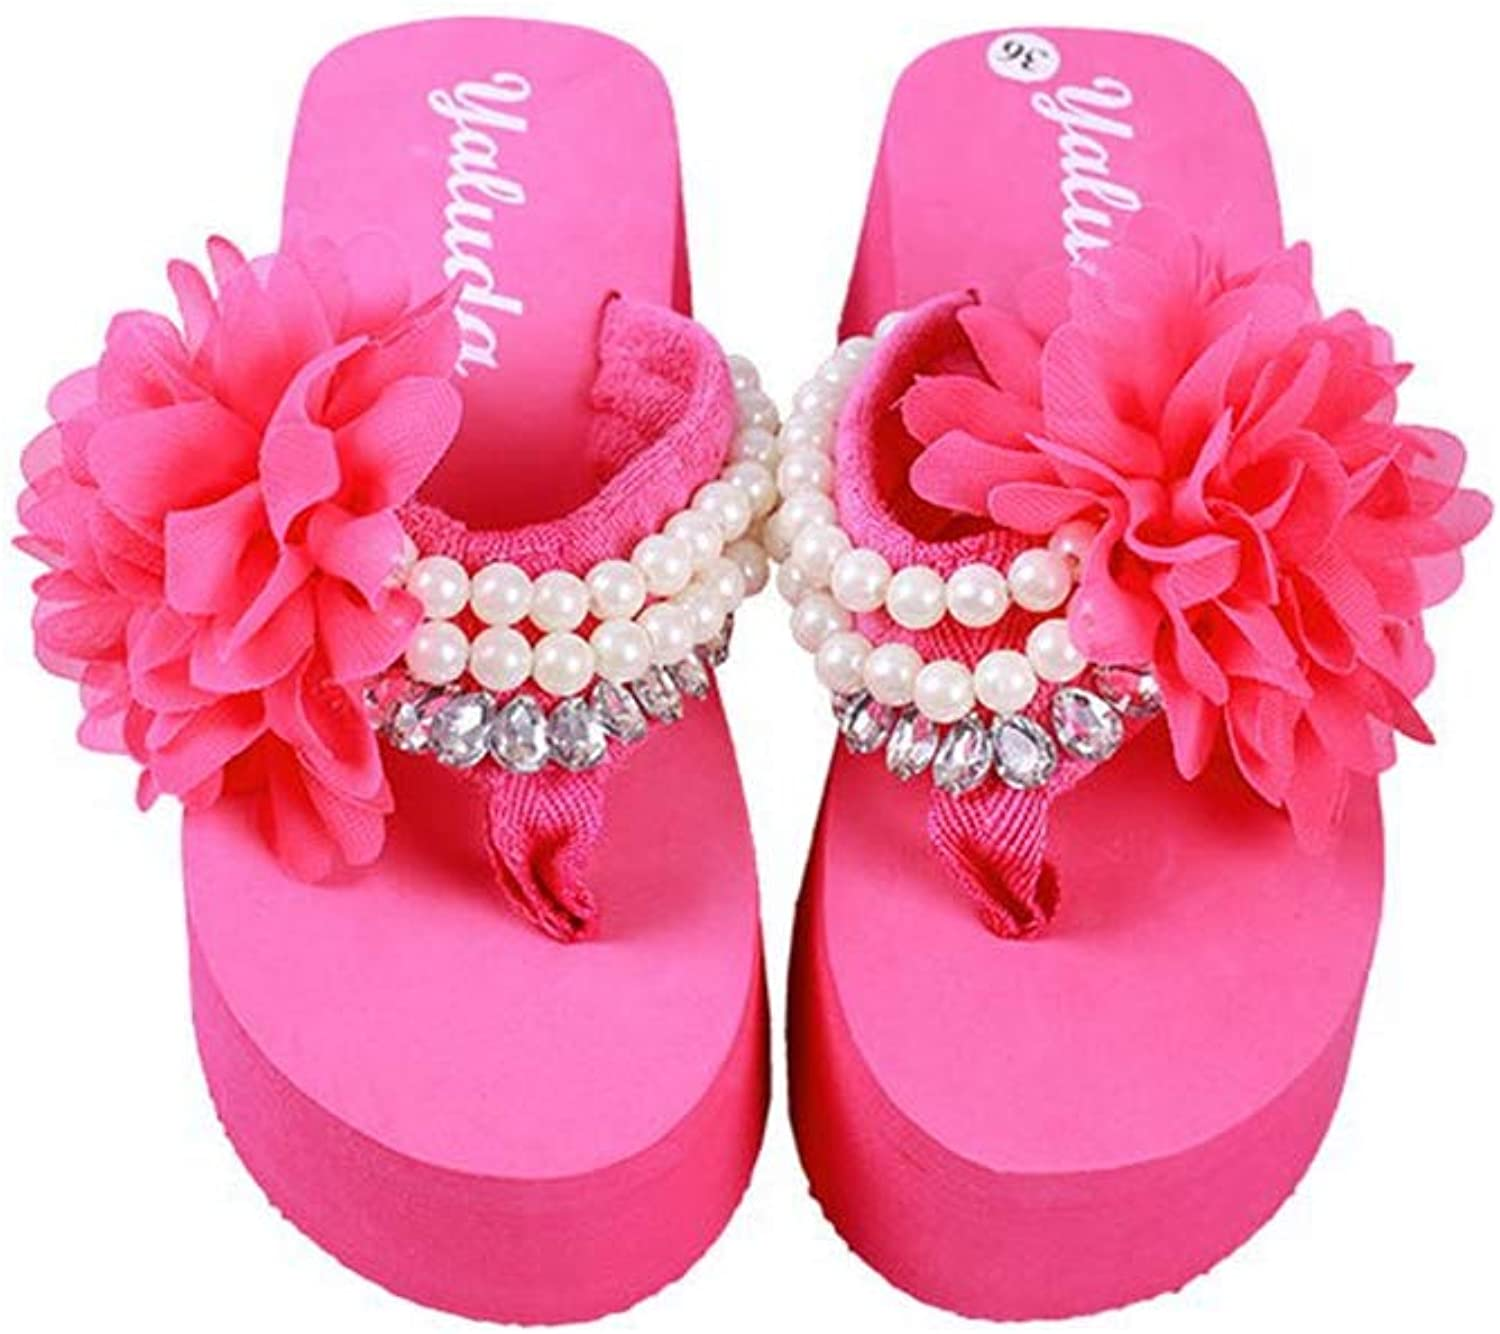 T-JULY Summer Wedge Heels Slippers Women shoes Lace String Bead Pearl Flip Flops Ladies Platform Thick Soled Sandals